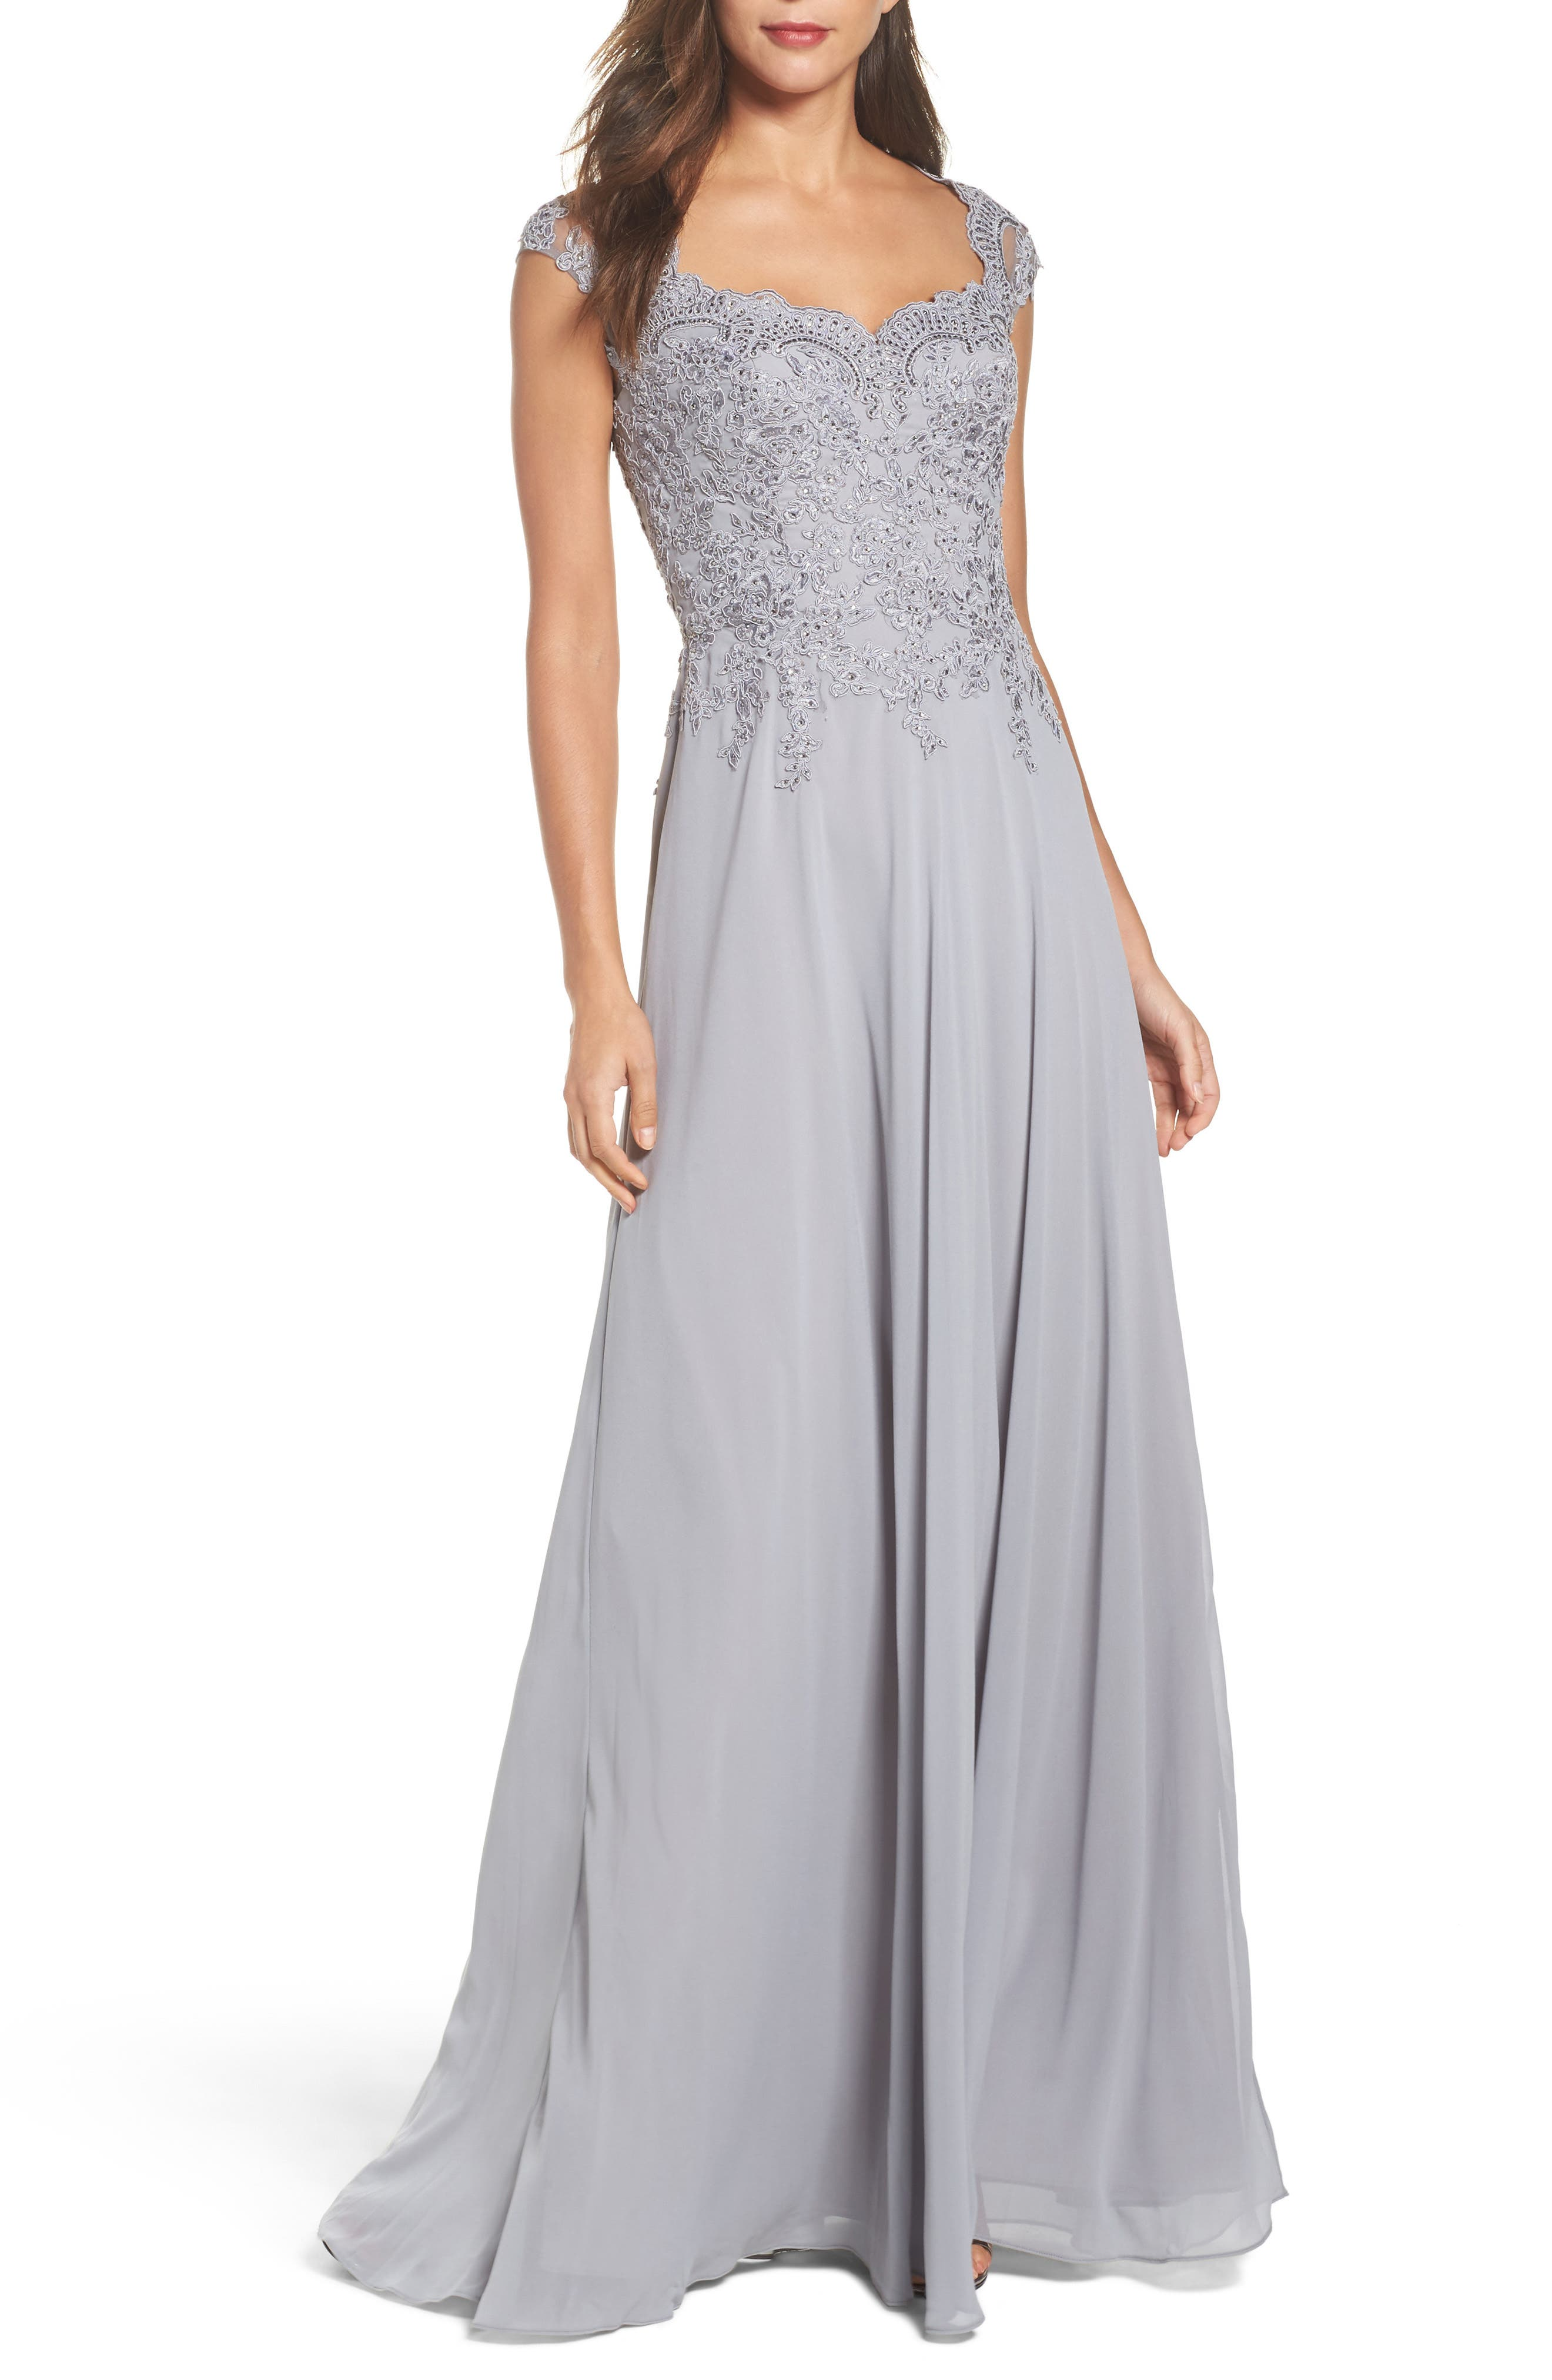 LA FEMME, Embellished Cap Sleeve Gown, Main thumbnail 1, color, 040